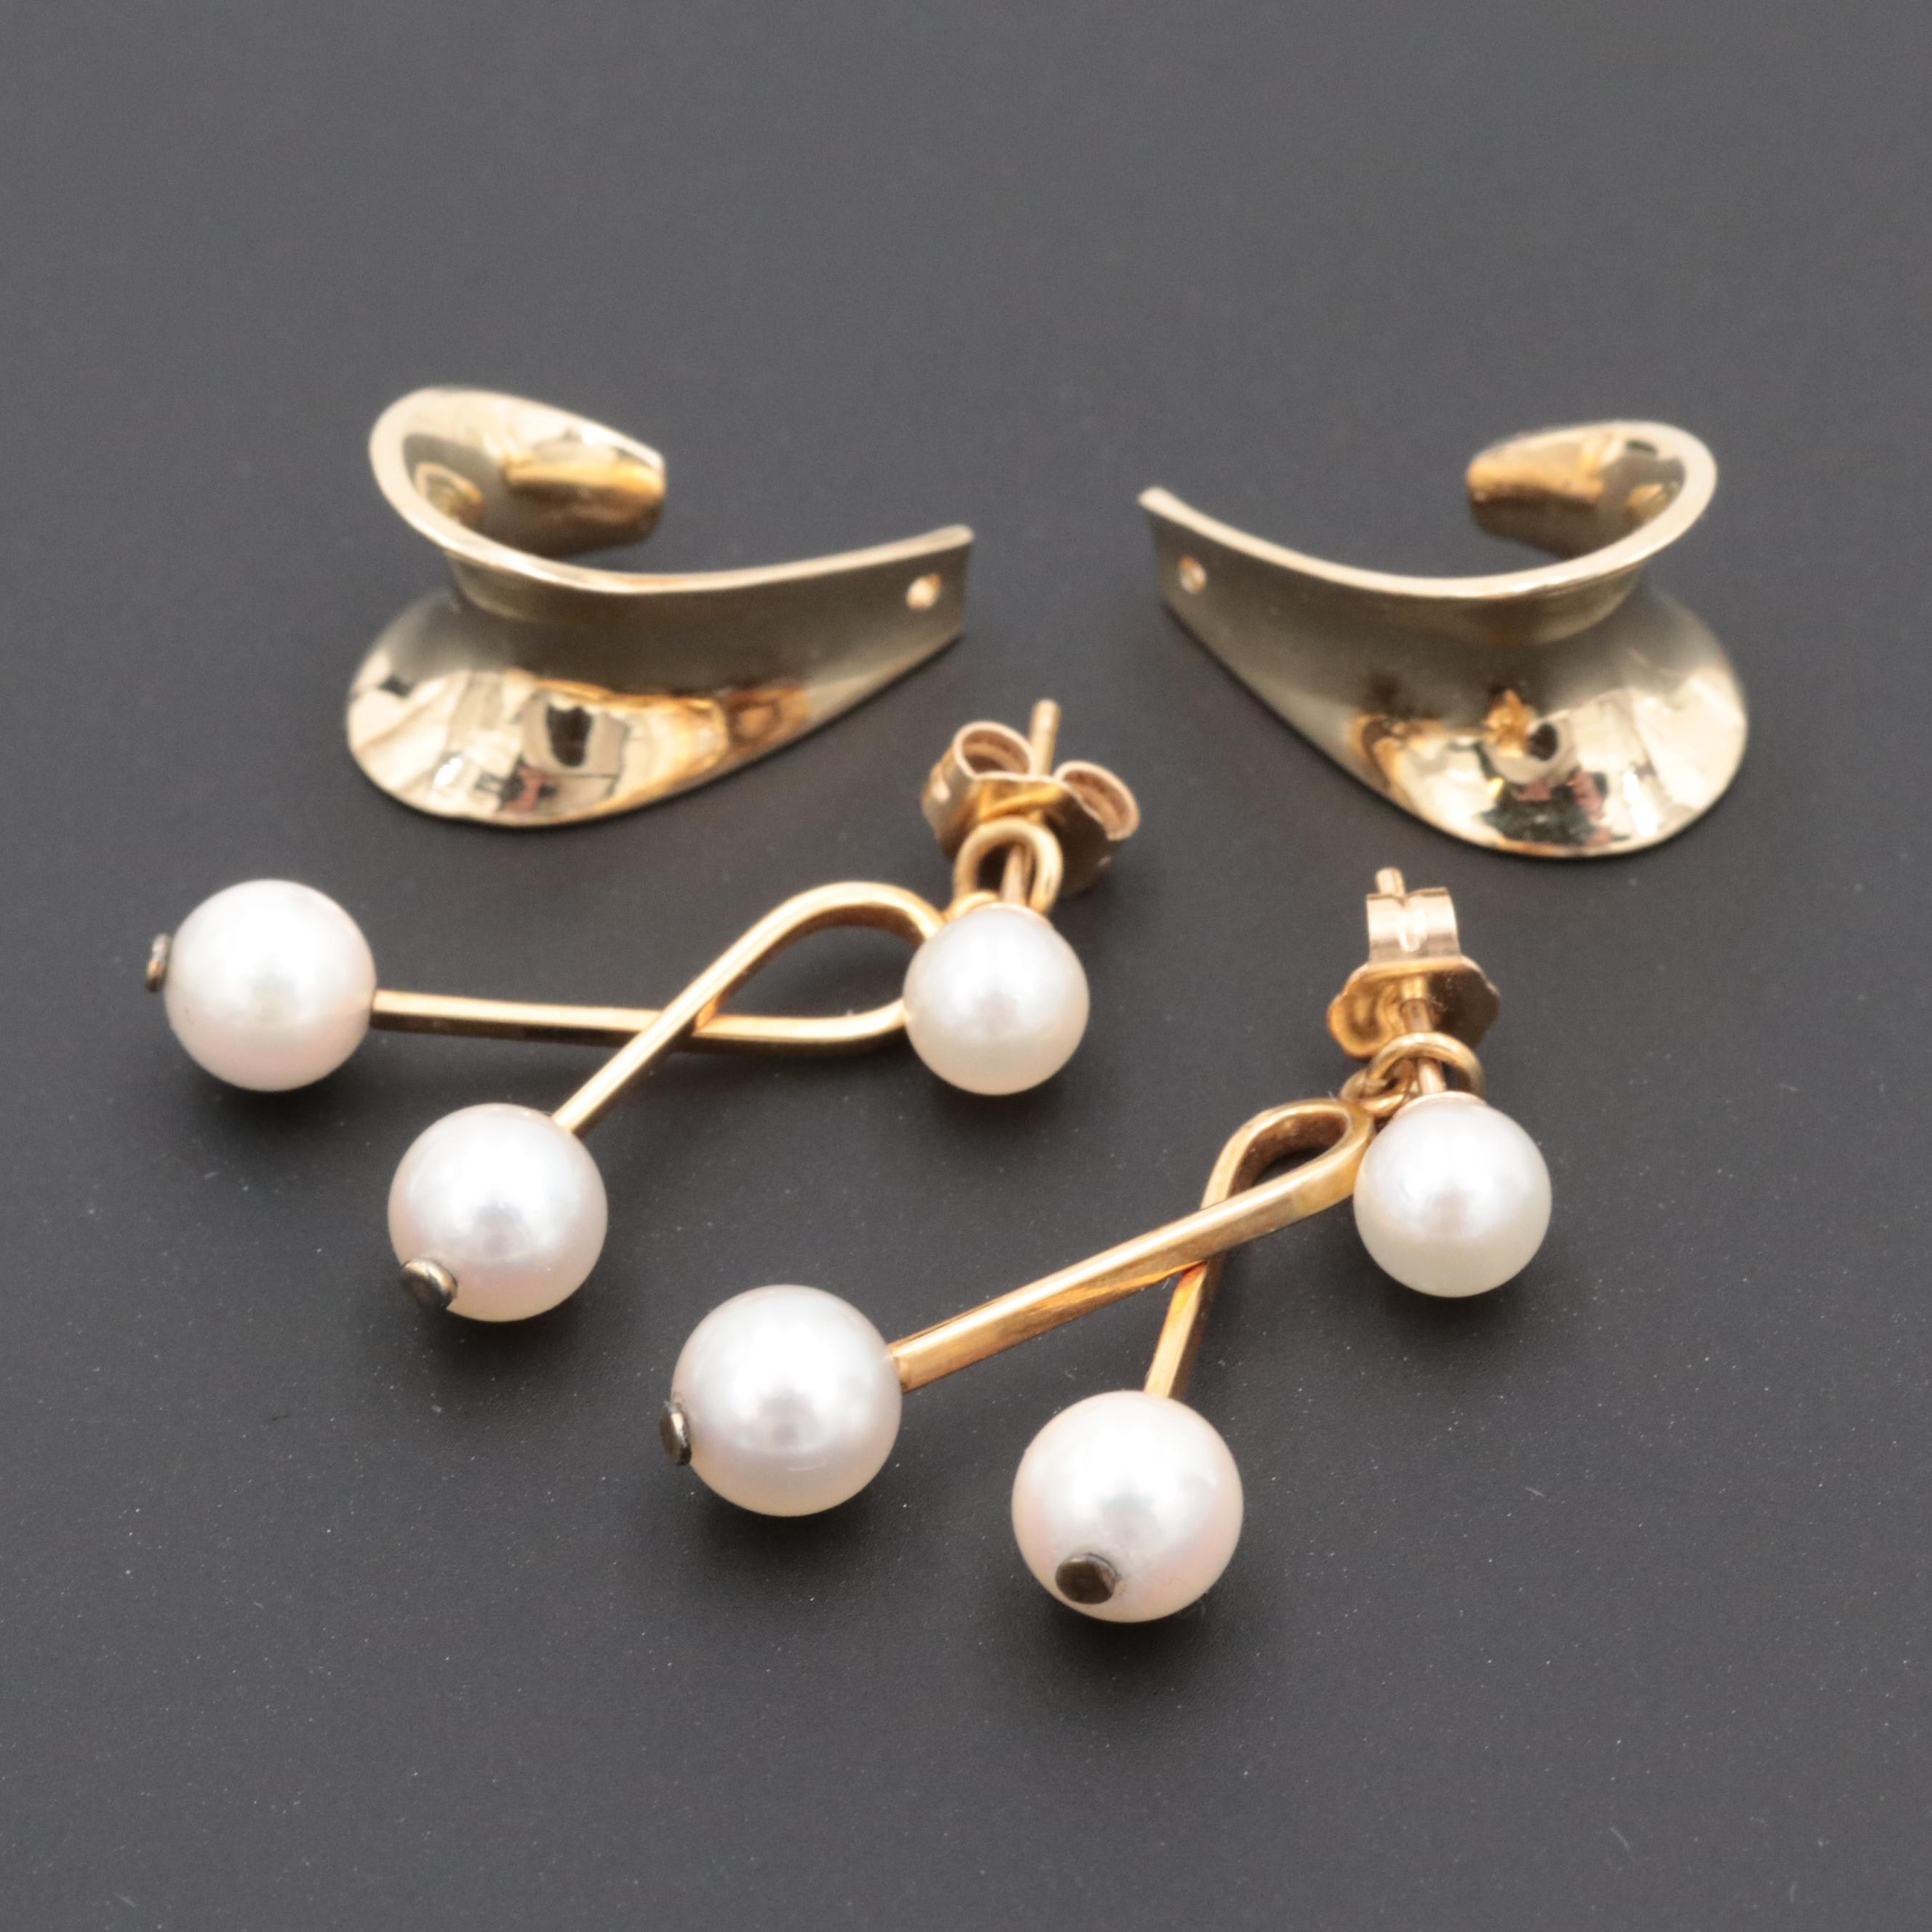 14K Yellow Gold Earring Jackets and Cultured Pearl Earrings